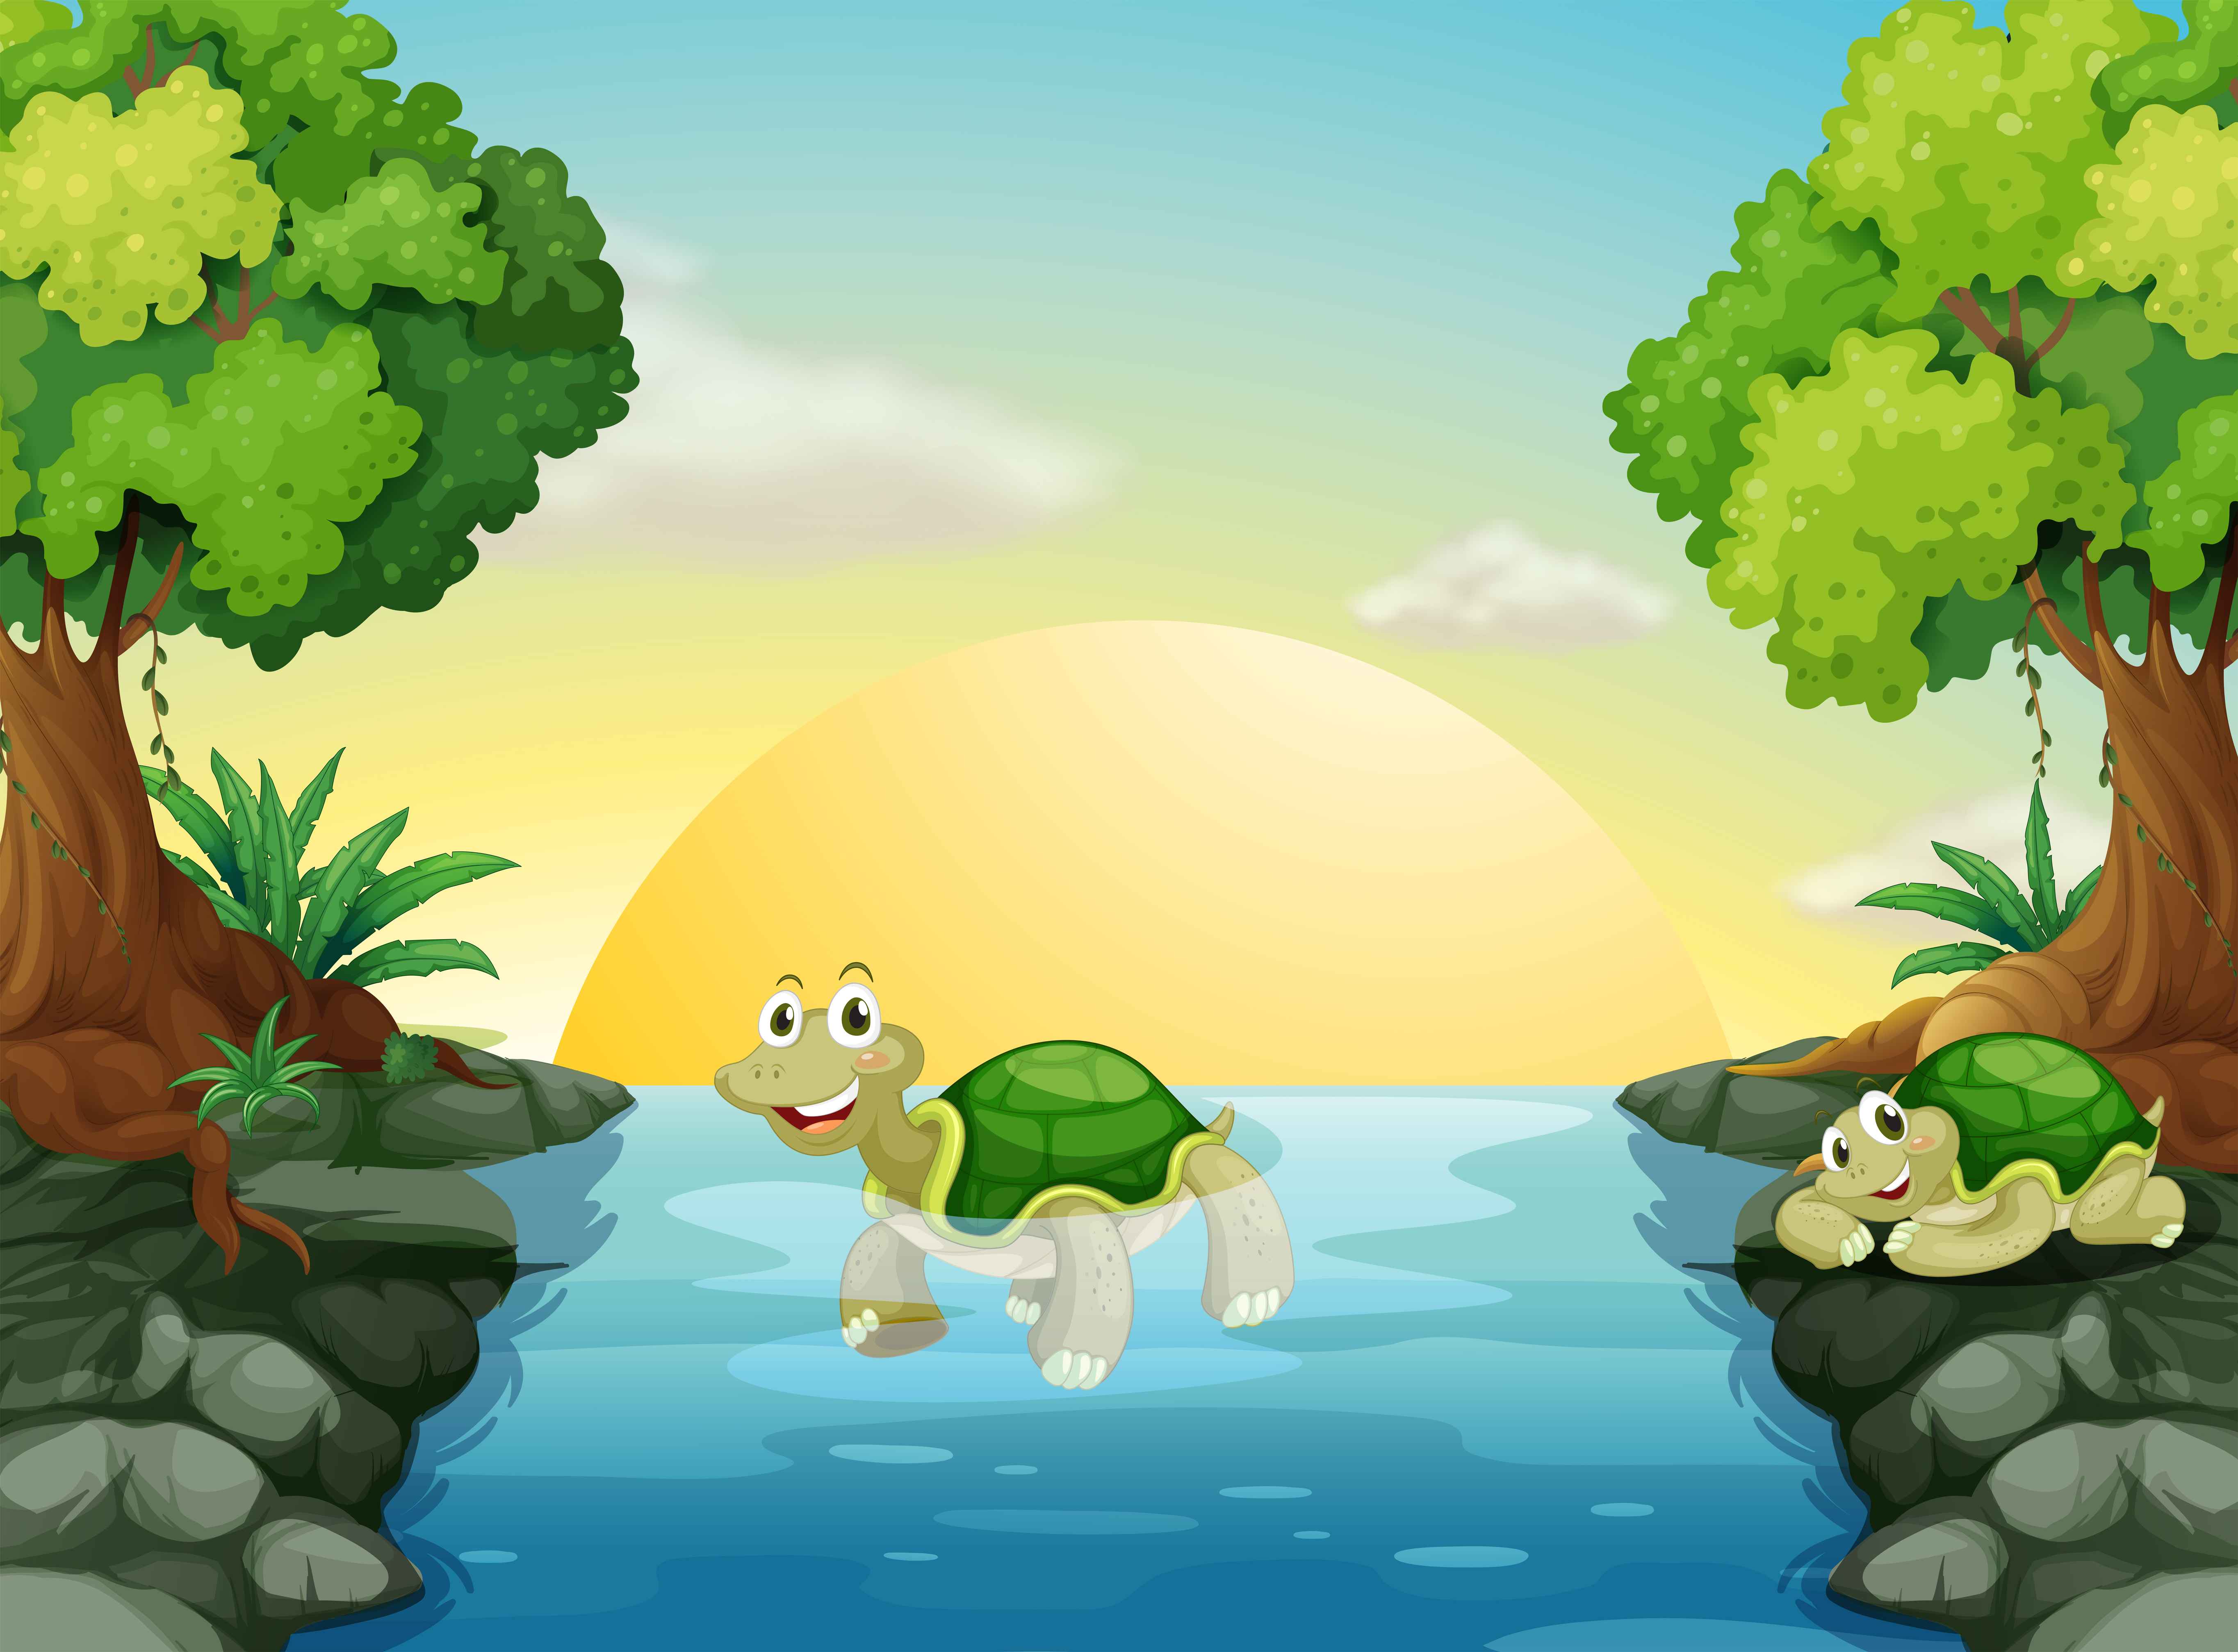 A Smiling Turtle At The River Download Free Vectors Clipart